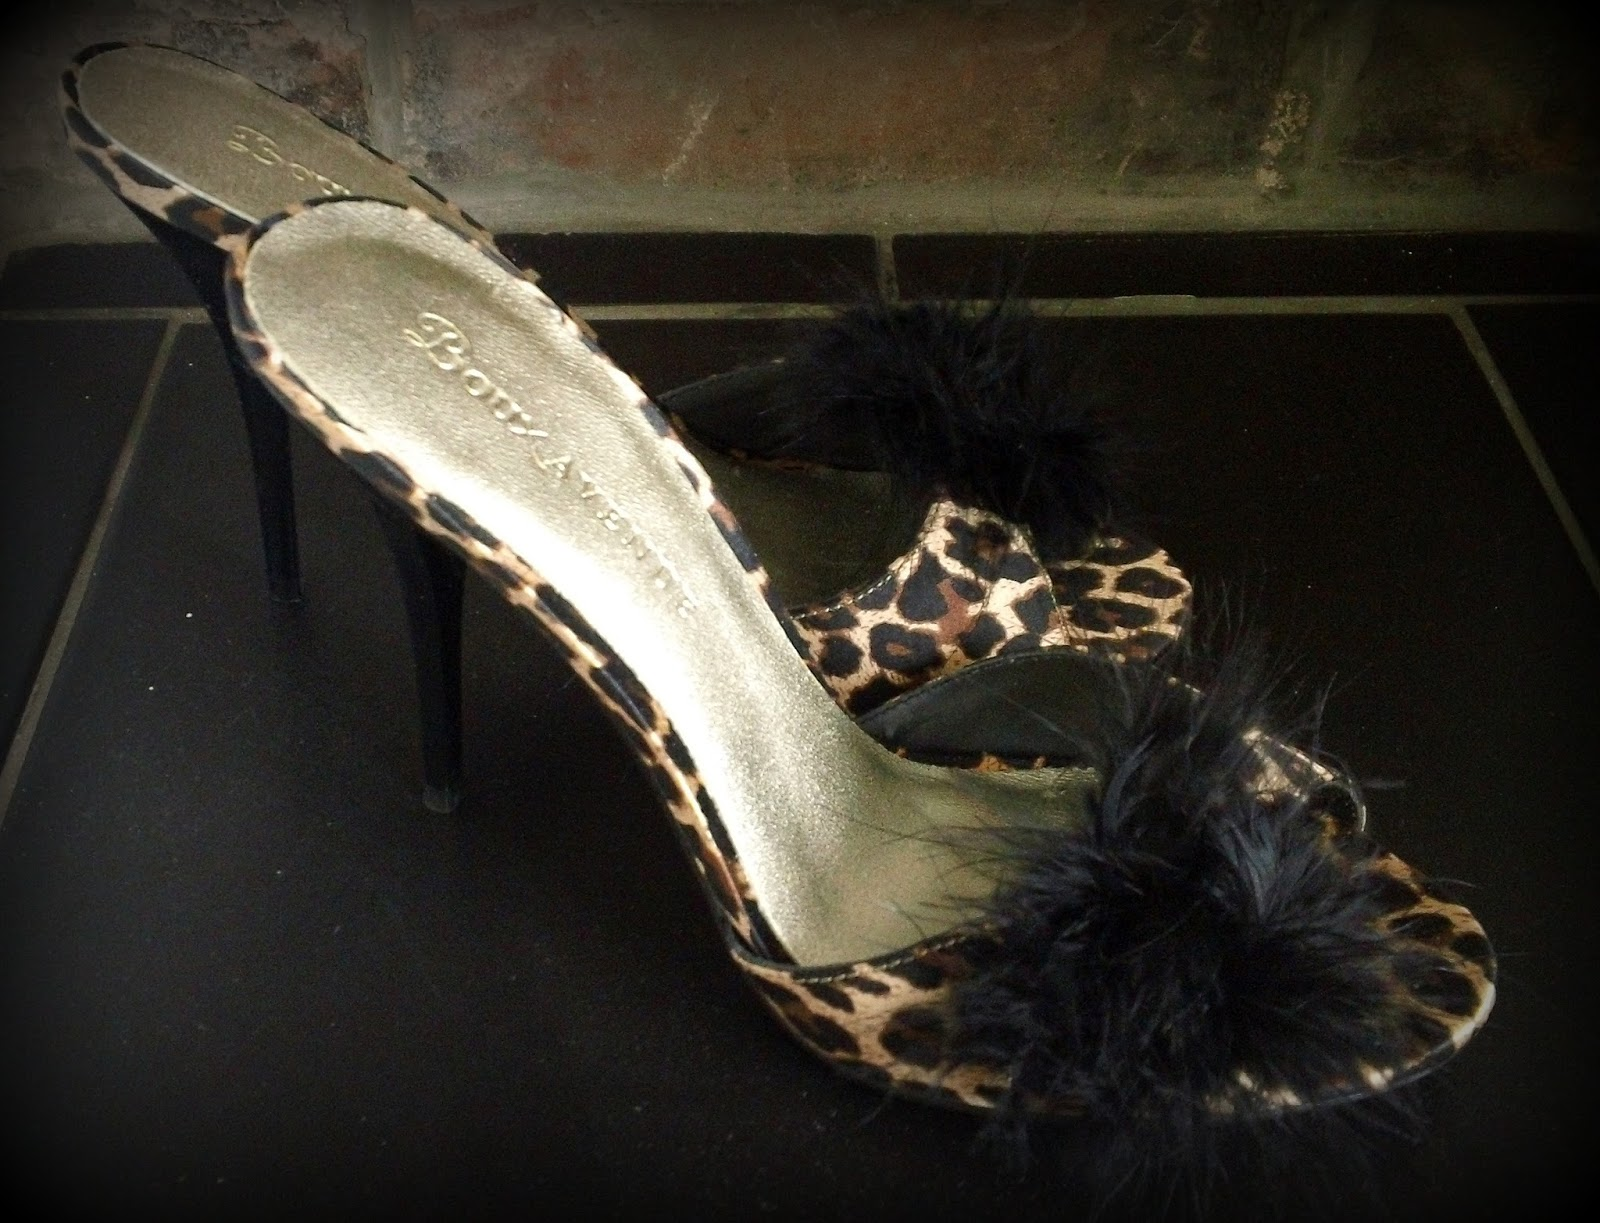 Marabou Mules, Vintage Slippers, Vintage Style, Glamorous Slippers